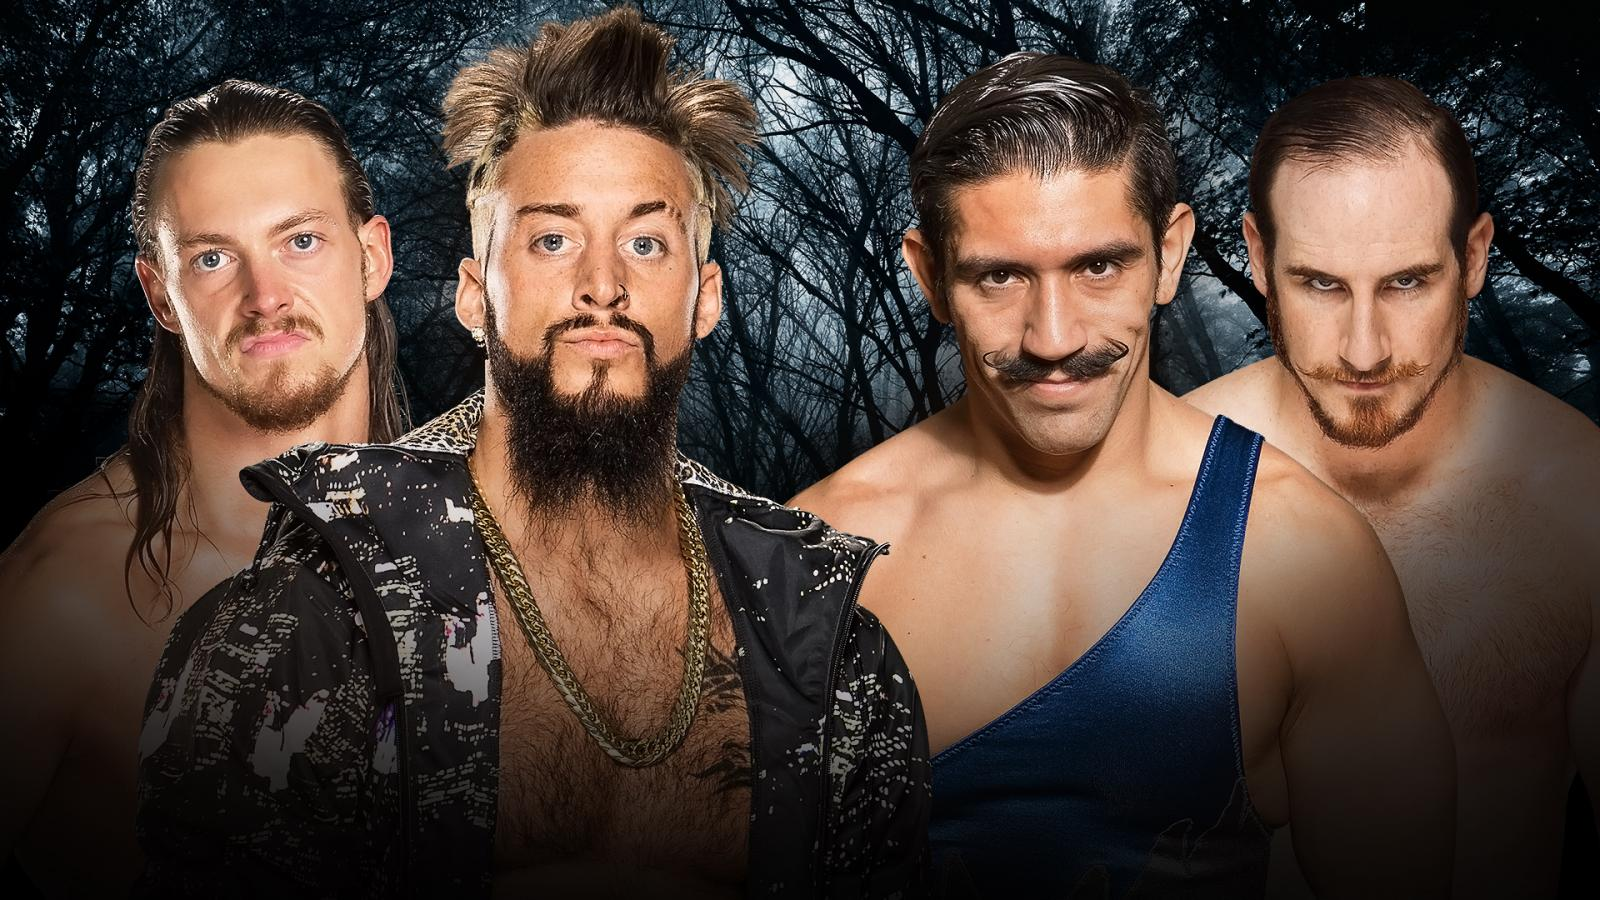 WWE Payback - Enzo & Cass Vs. The Vaudevillains